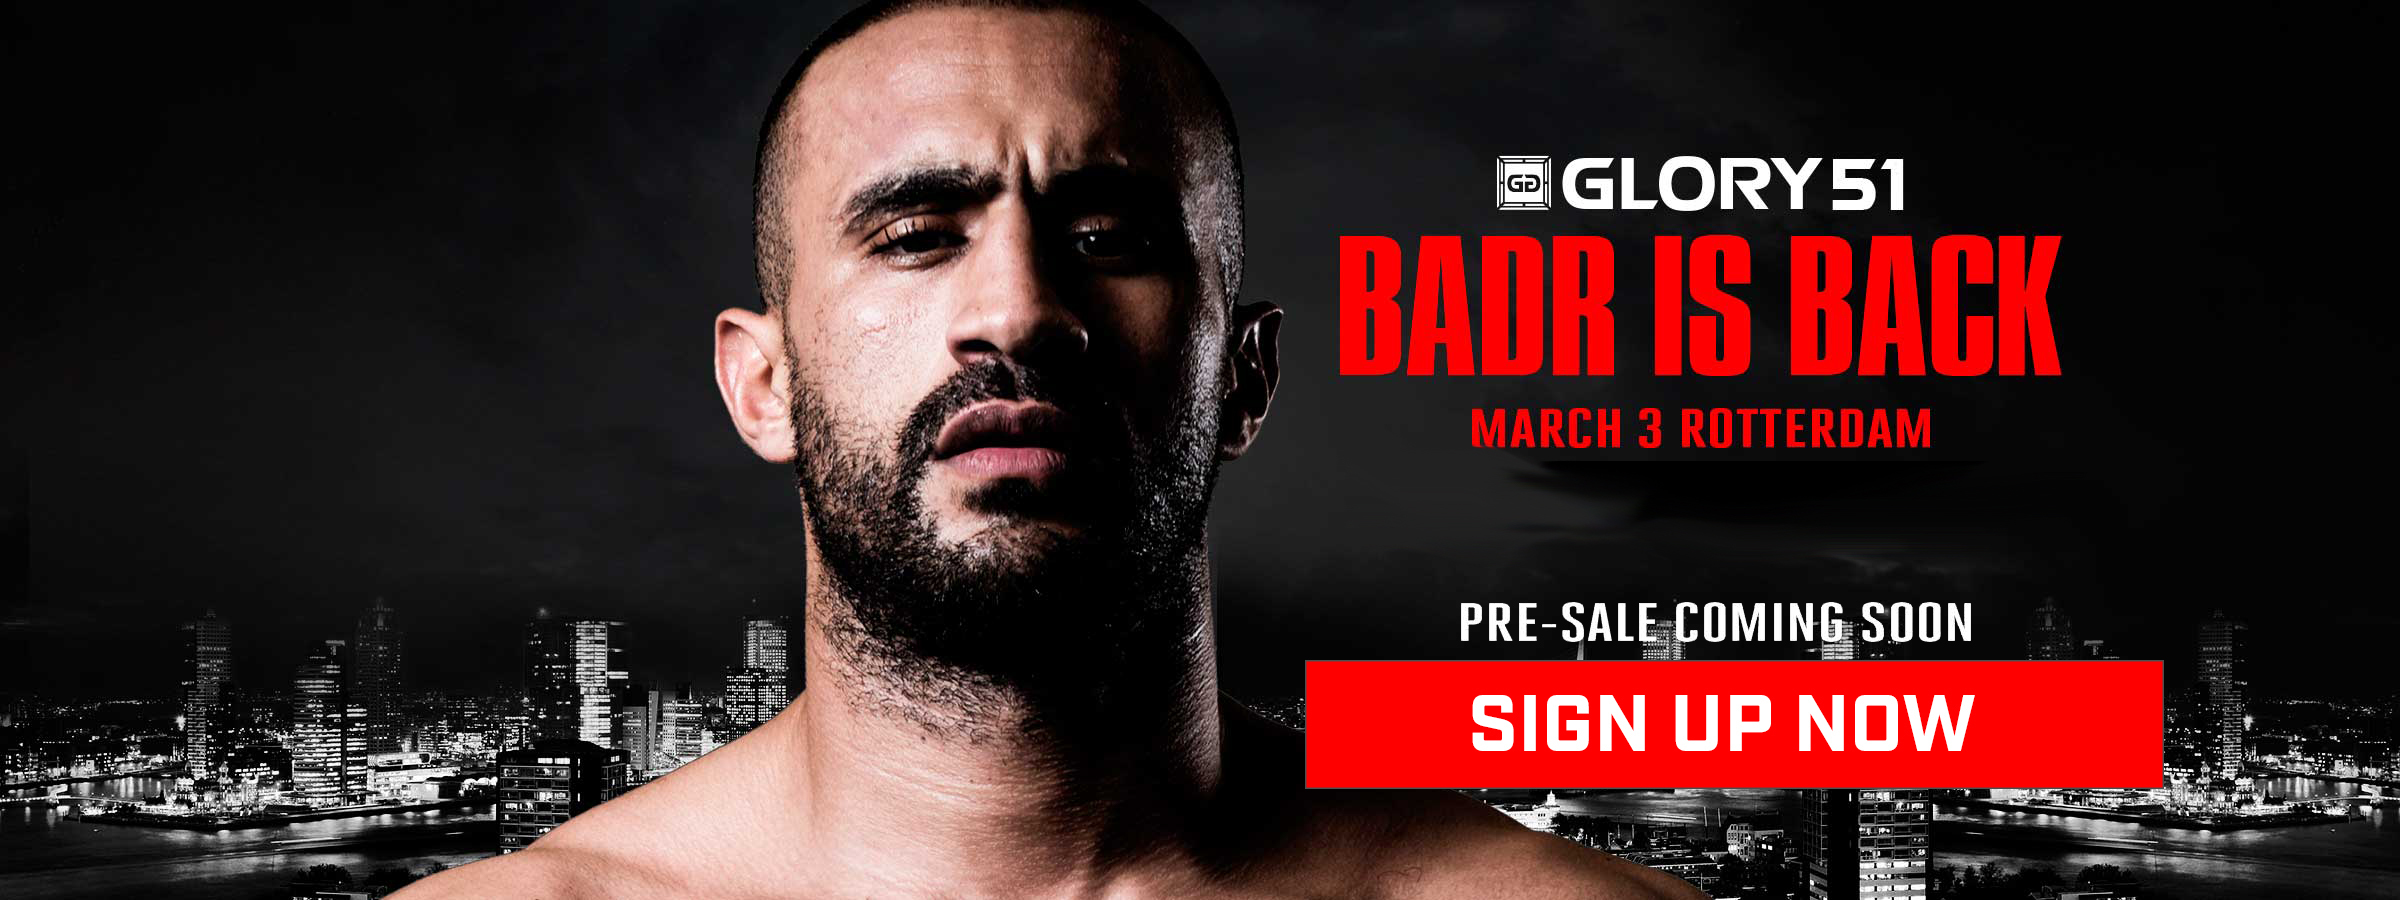 Sign up for GLORY 51 pre-sale info!